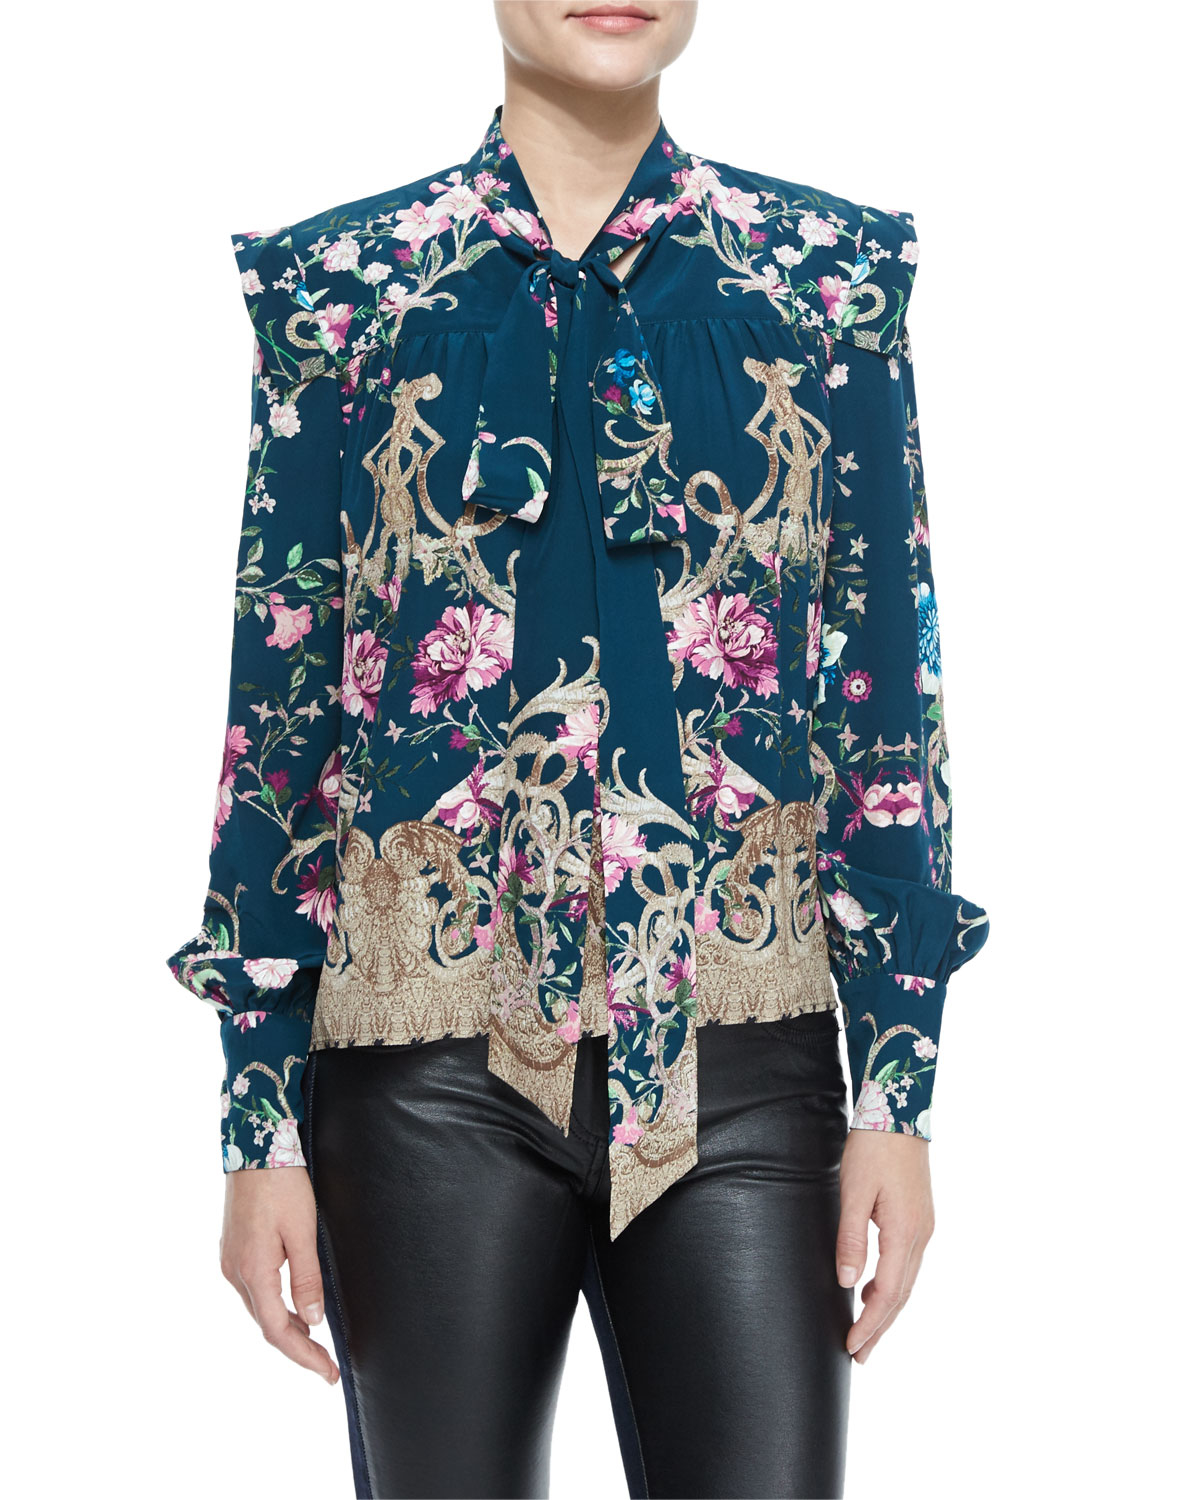 Ruffled floral-printed silk blouse Roberto Cavalli Cheap Sale Brand New Unisex Cheap 2018 Unisex Sale Prices Authentic Online Mlp7P